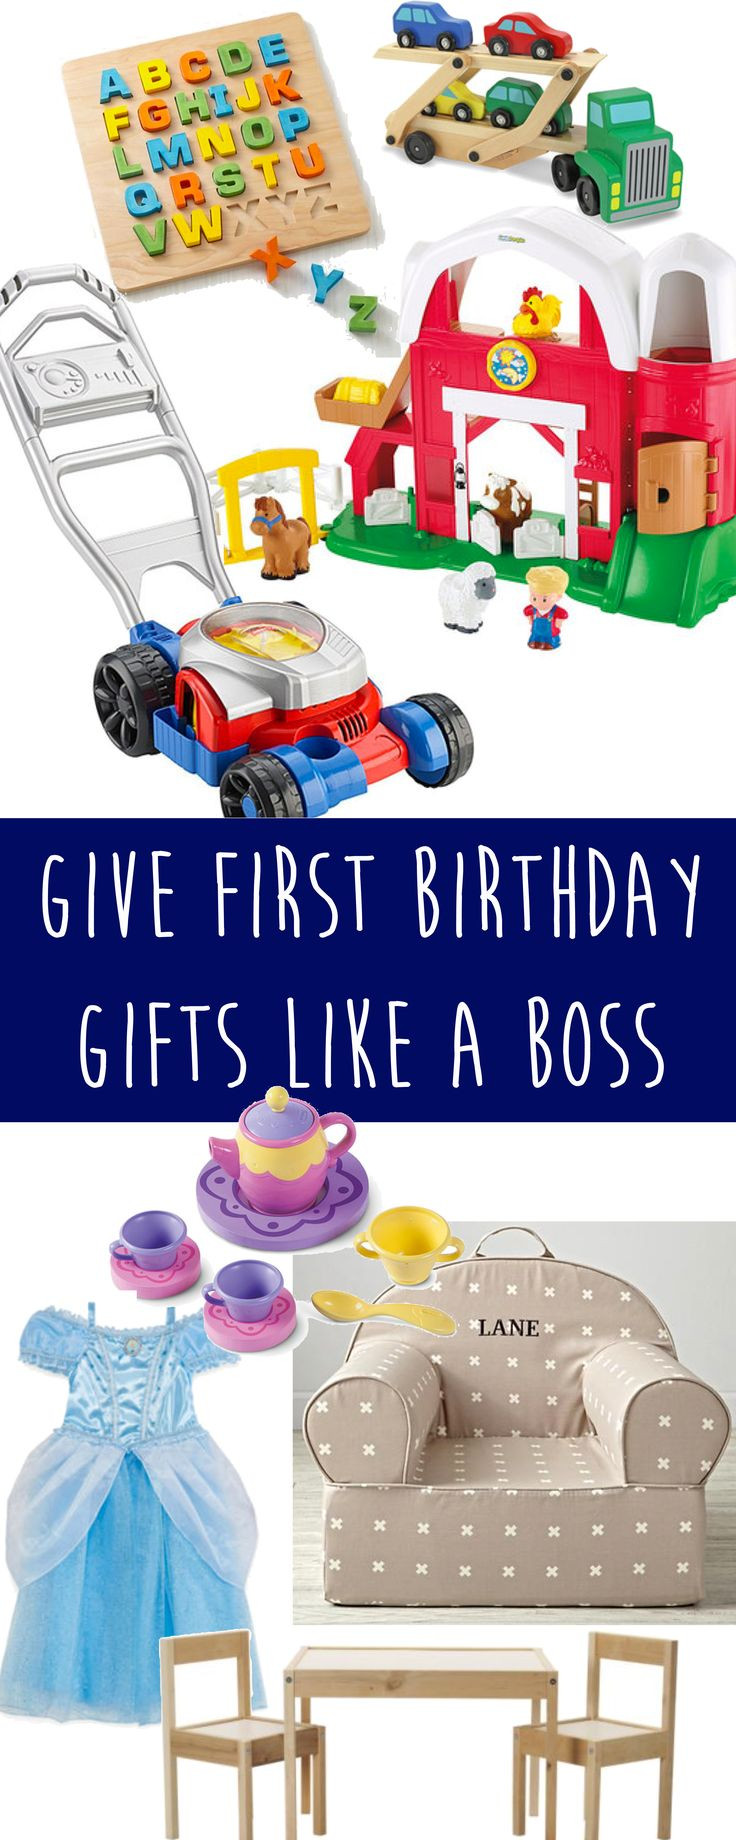 Best ideas about First Birthday Gift Ideas . Save or Pin 25 Best Ideas about First Birthday Gifts on Pinterest Now.